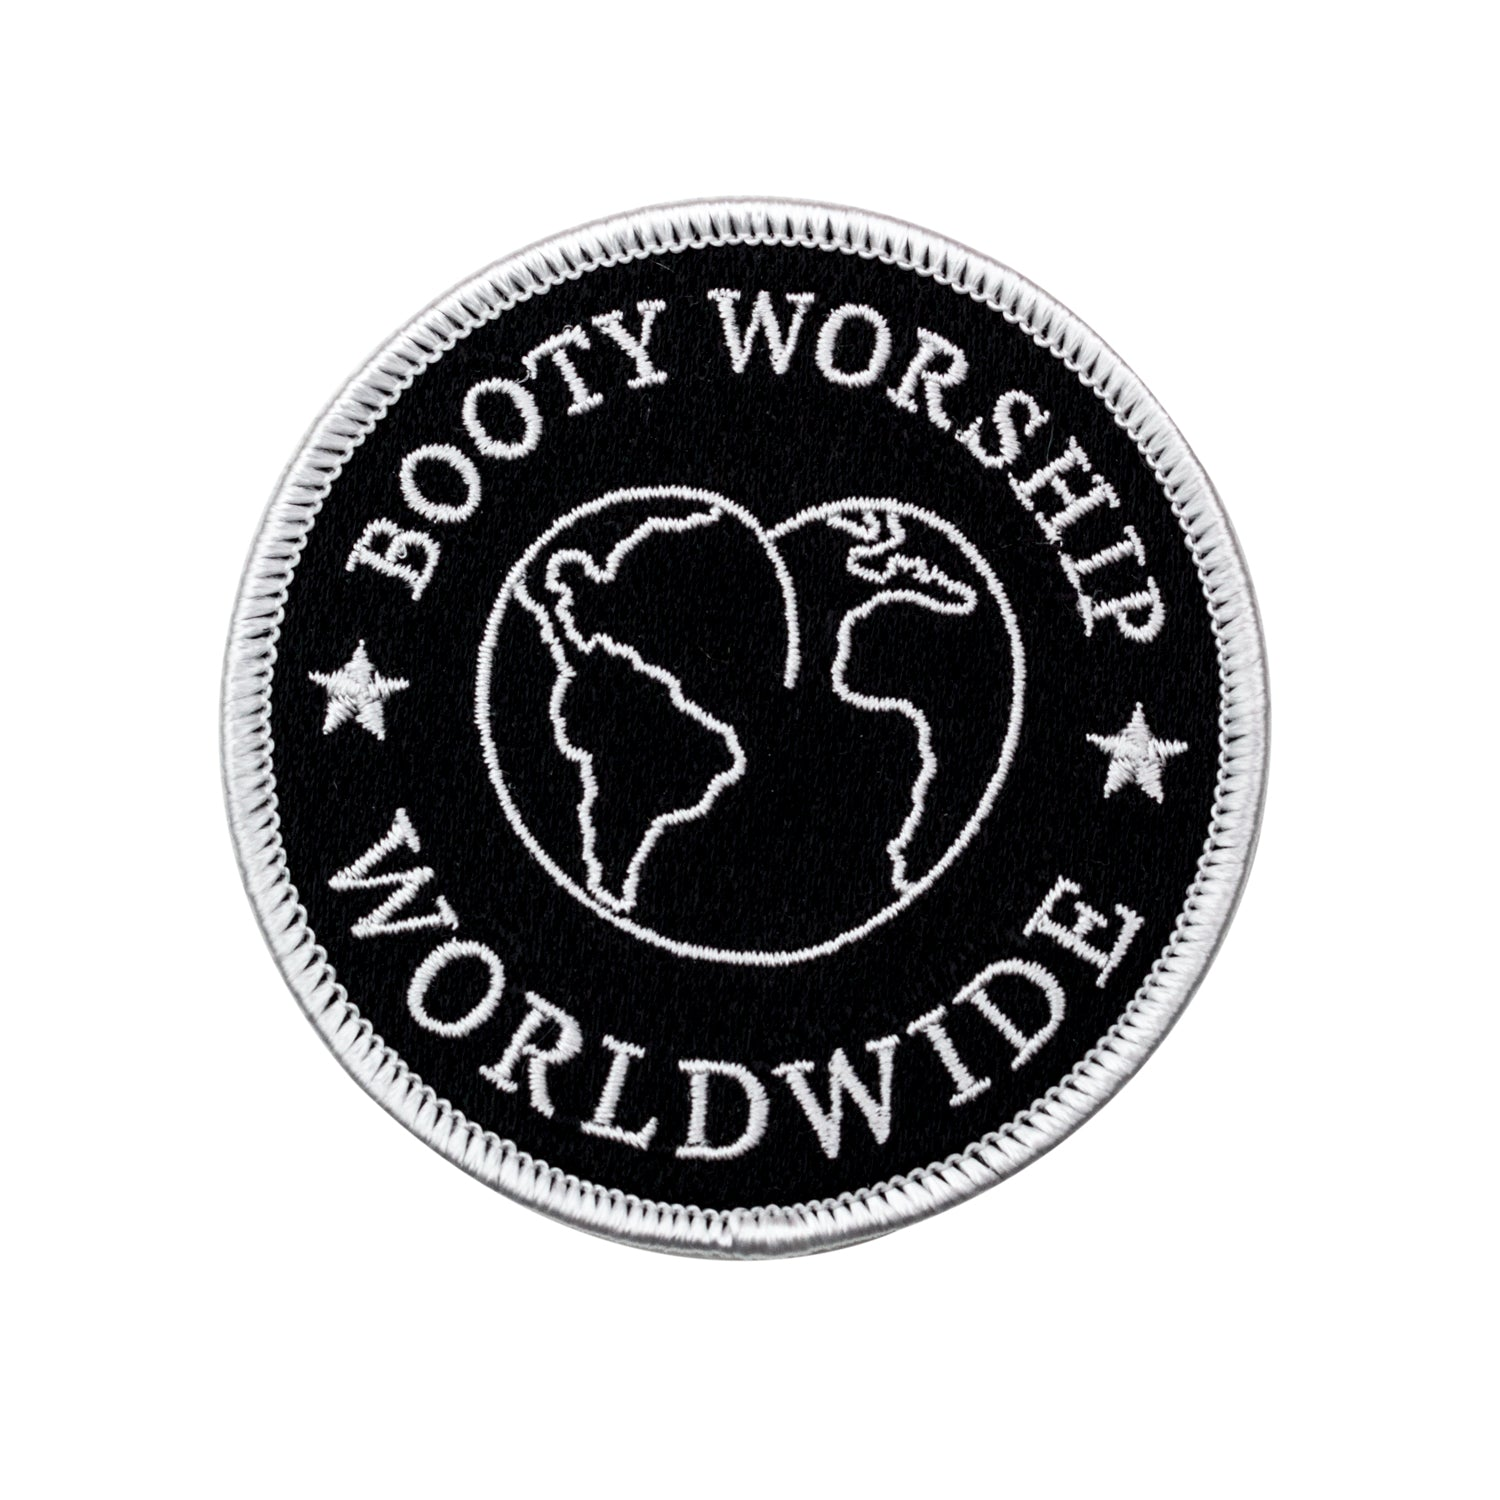 Booty Worship Worldwide Club Patch